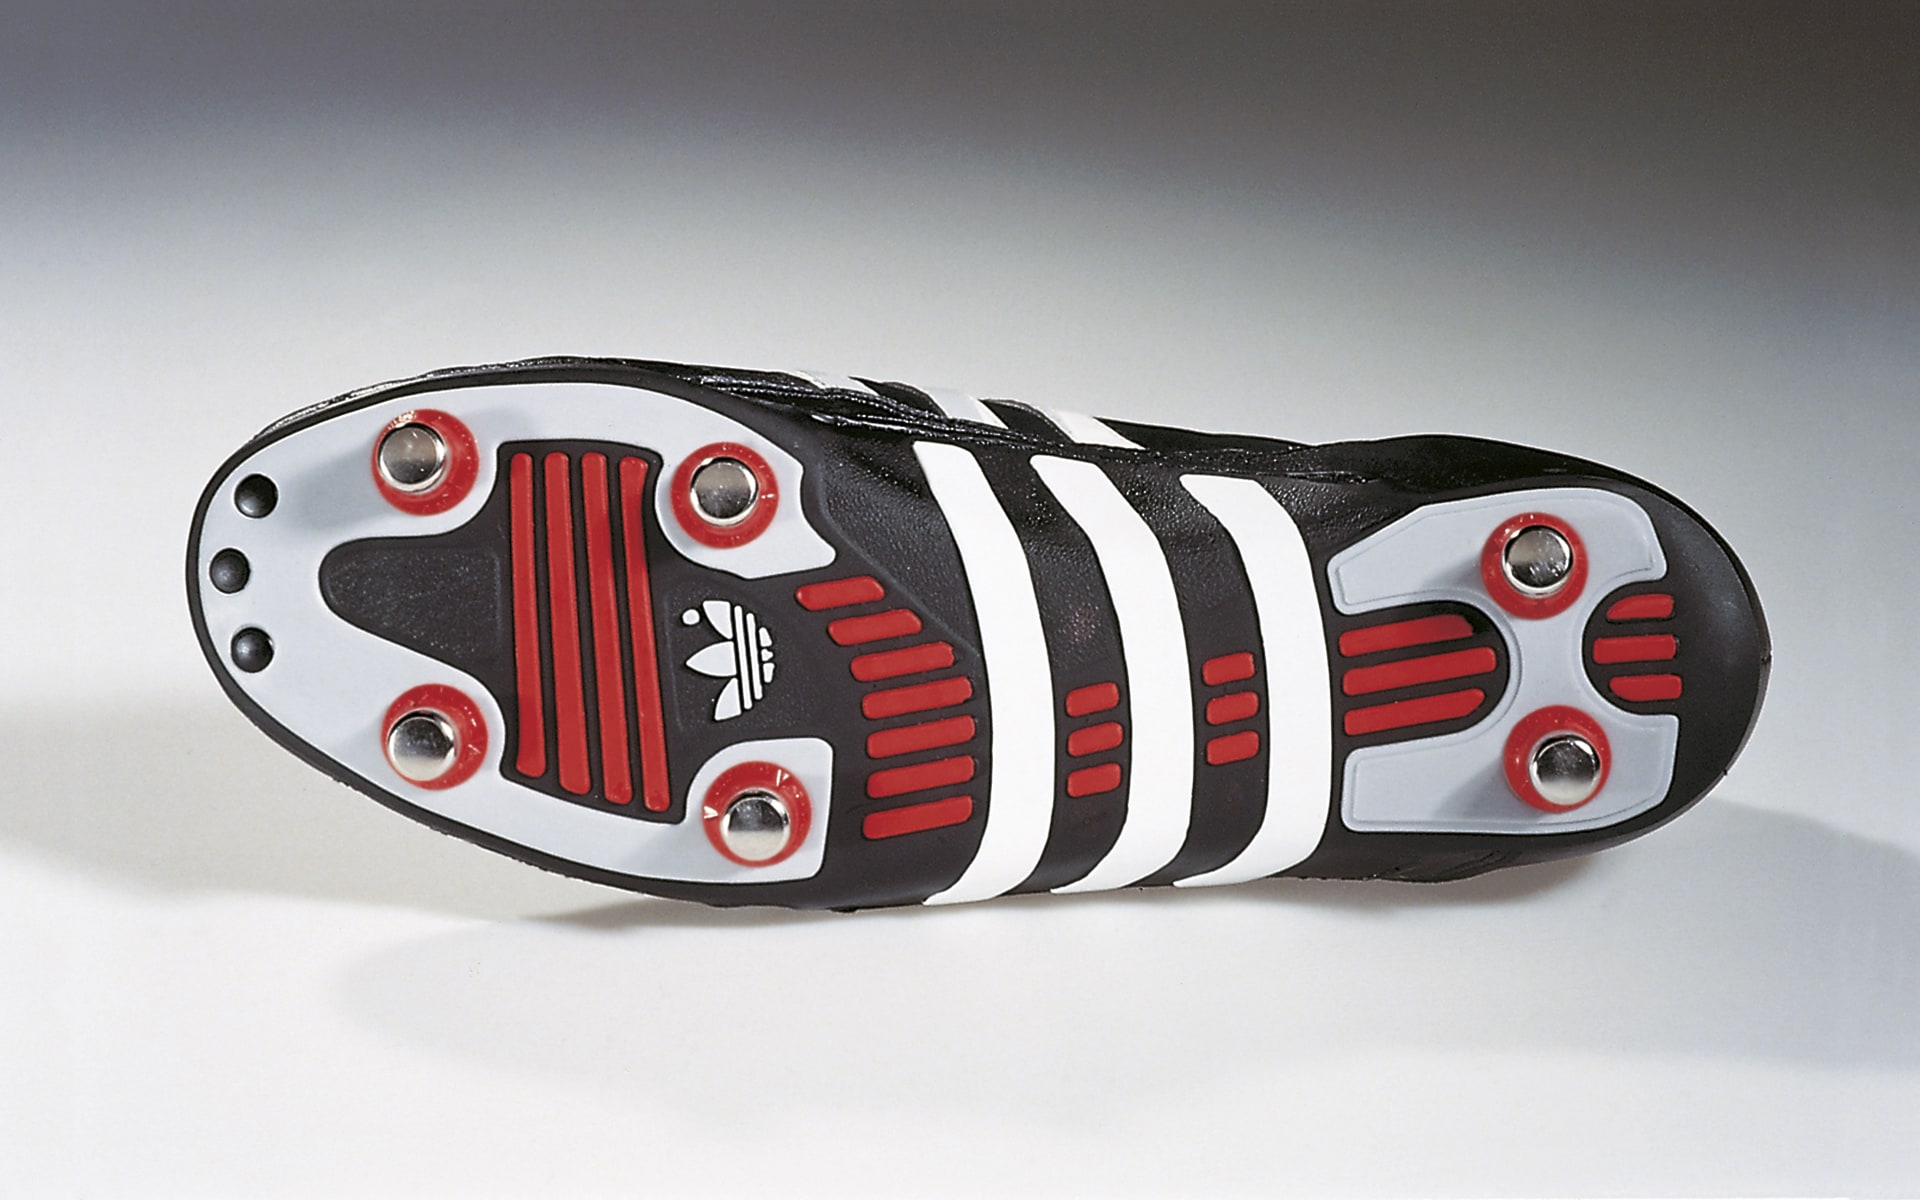 Black-red-and-white World Champion soccer shoe by ITO Design for Adidas, designed in 1990